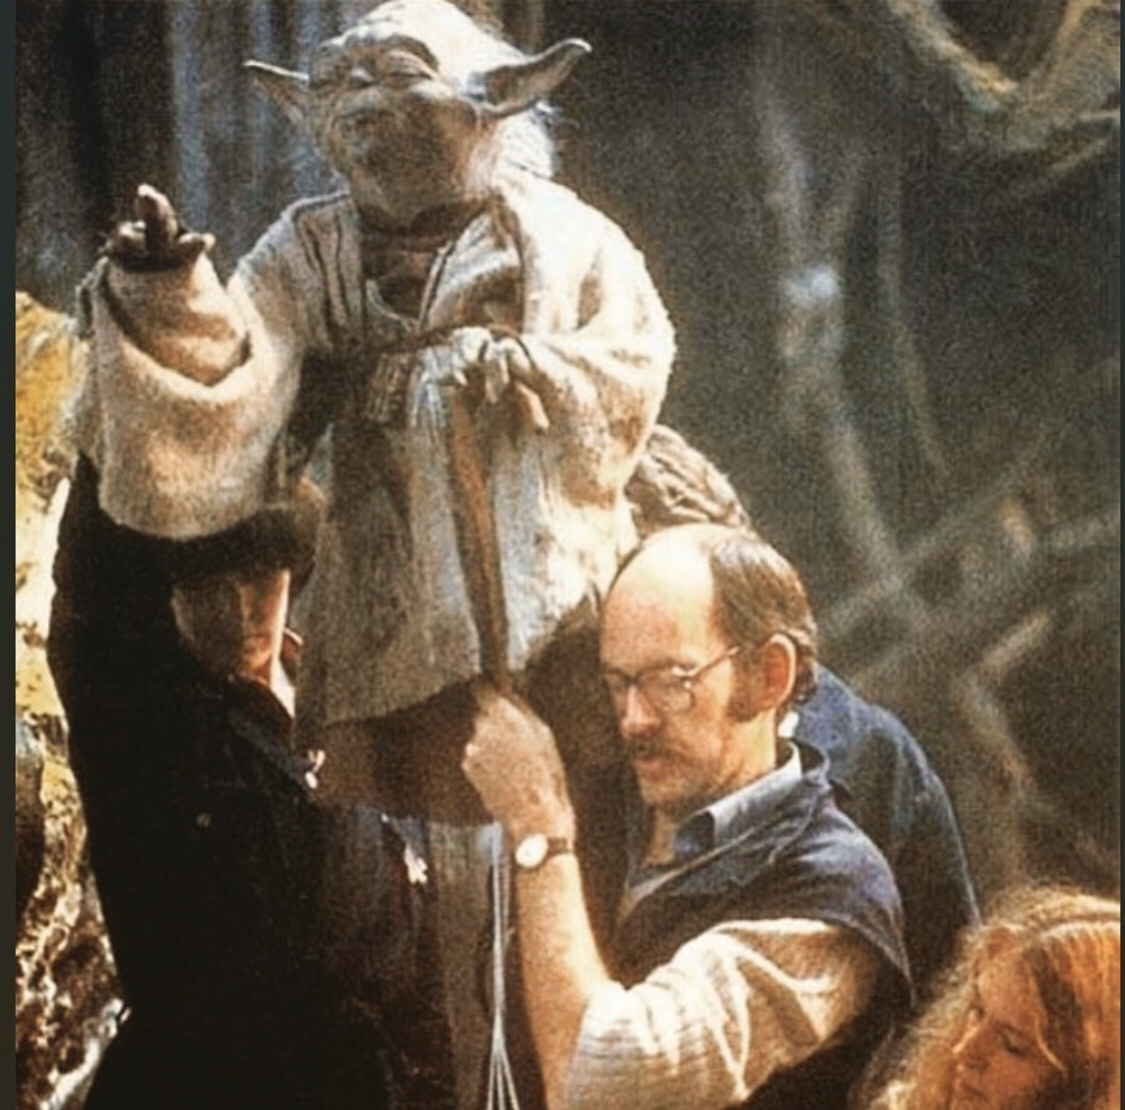 Yoda and Frank Oz on the set (he's also the voice of Yoda)